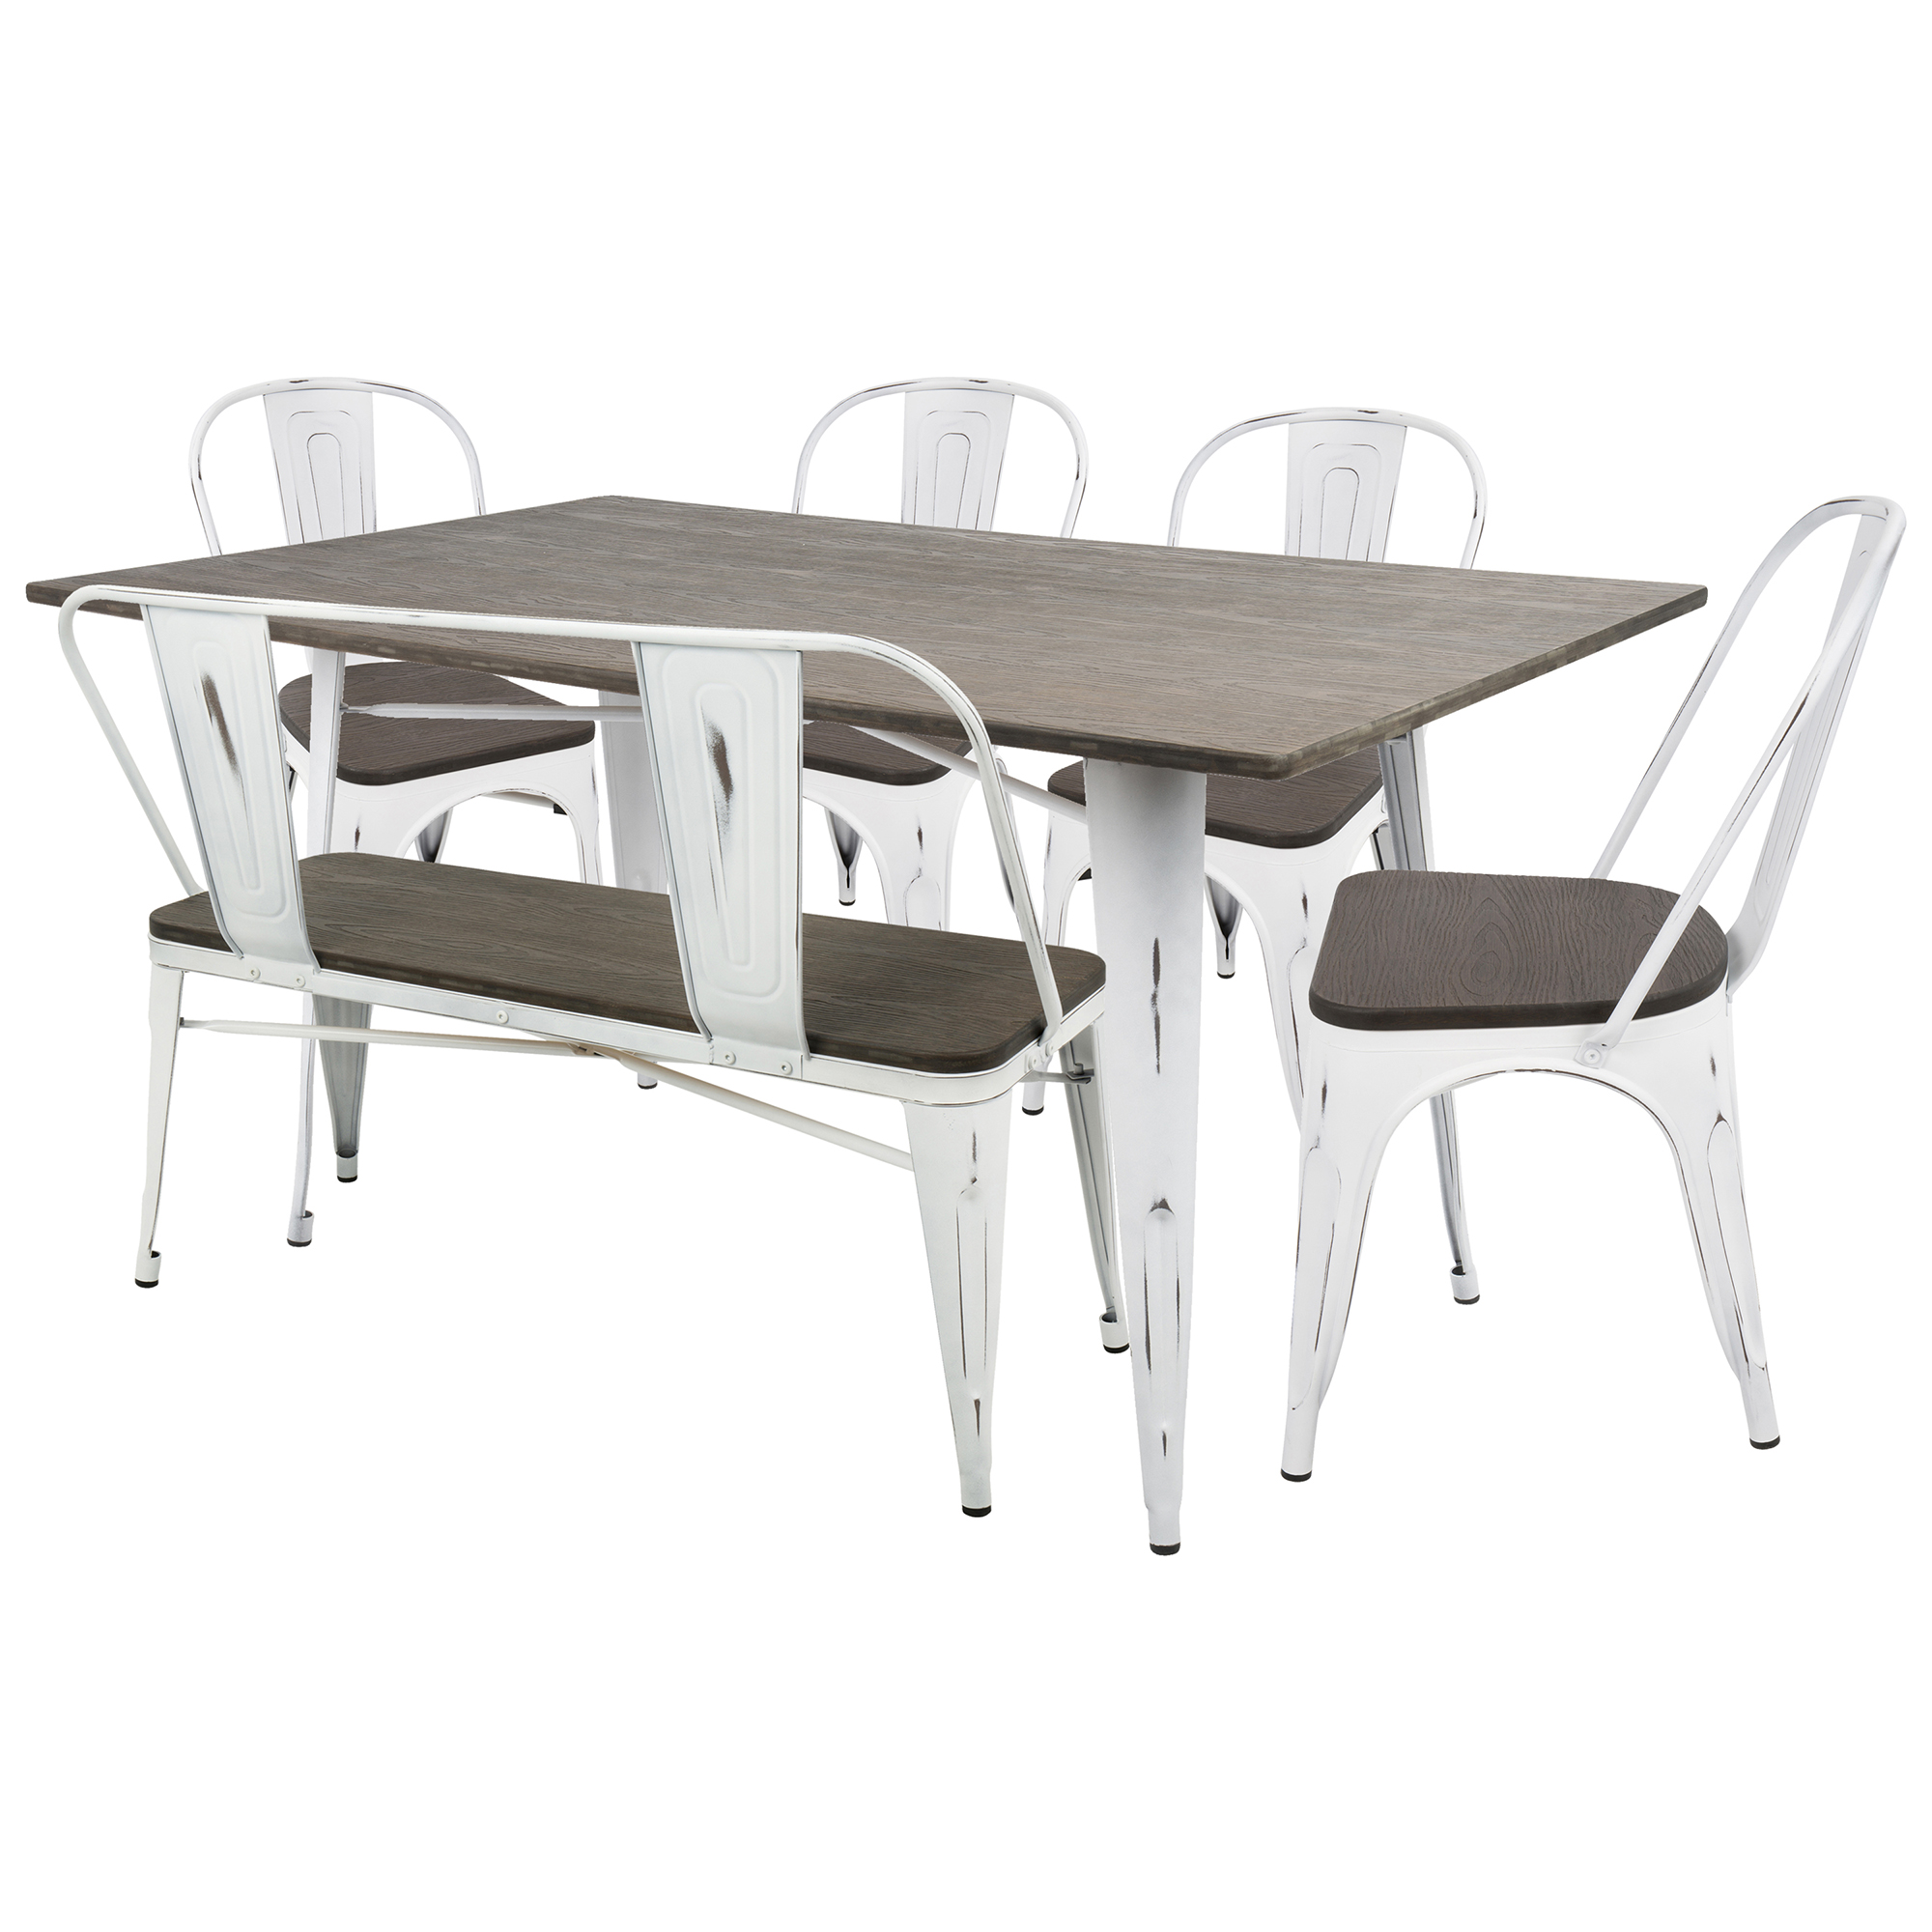 Oregon 6 piece industrial farmhouse dining set in vintage white and espresso by lumisource walmart com